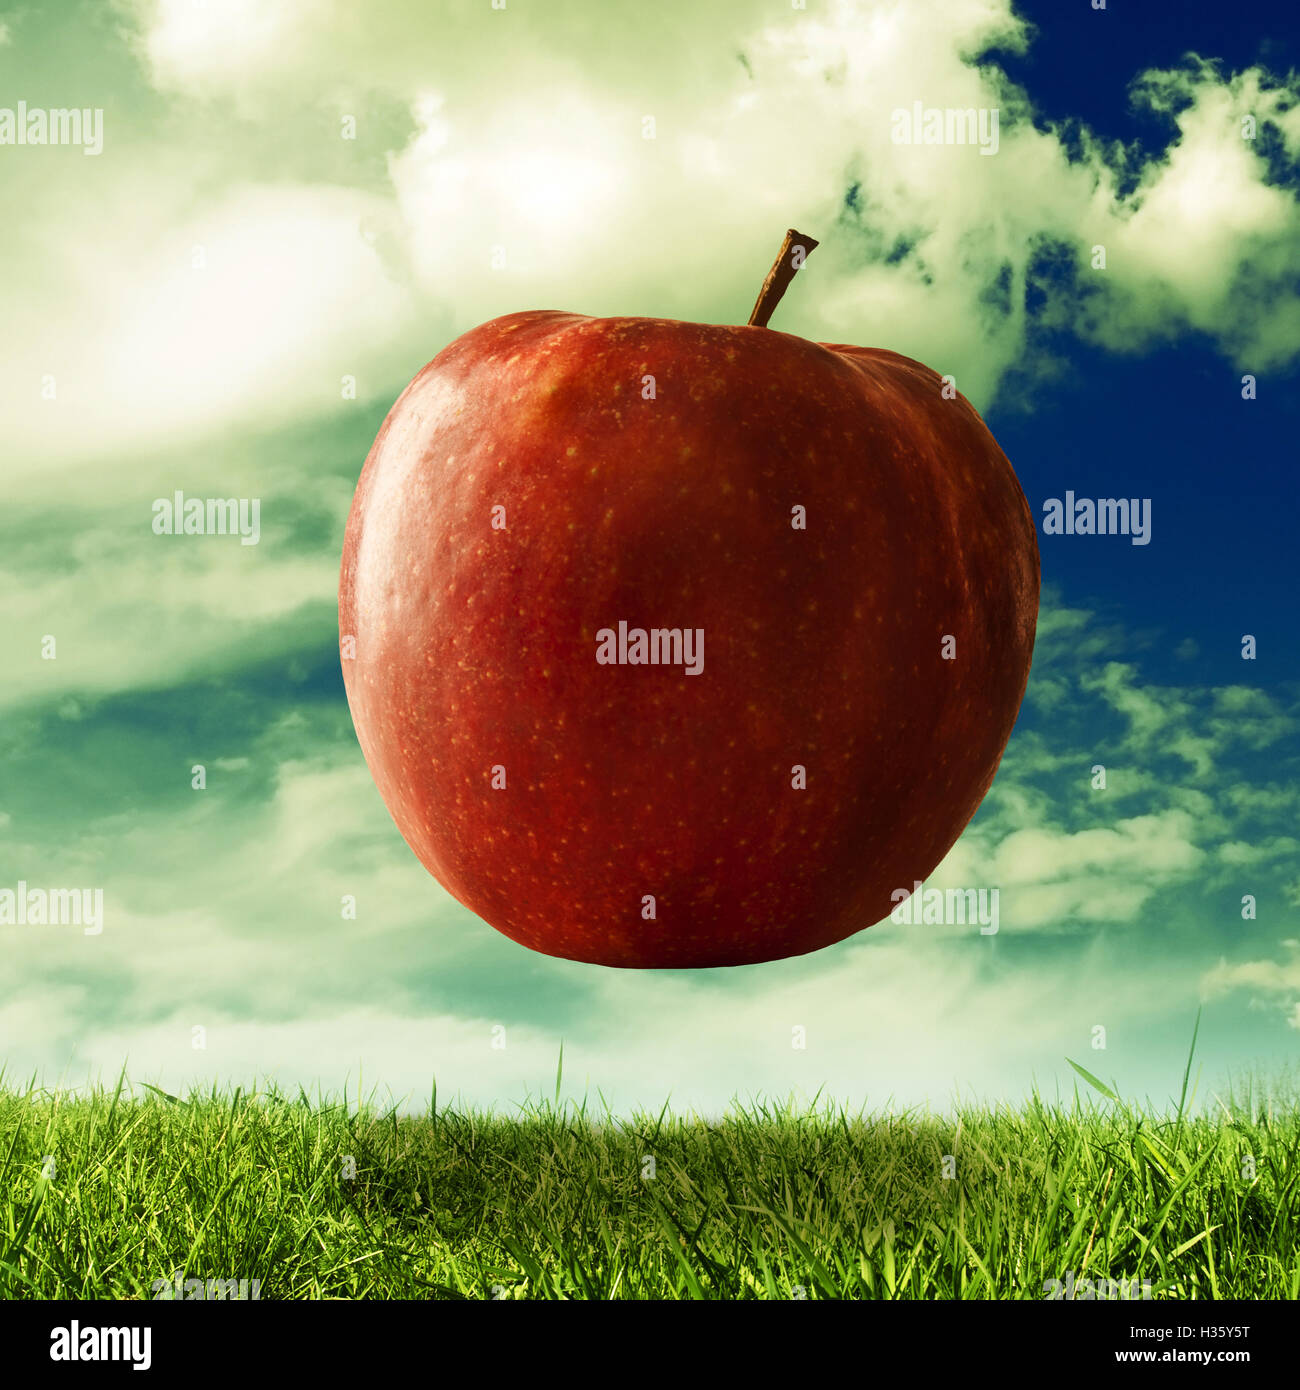 giant apple floating over a meadow, imagination, ideas and creativity concept - Stock Image